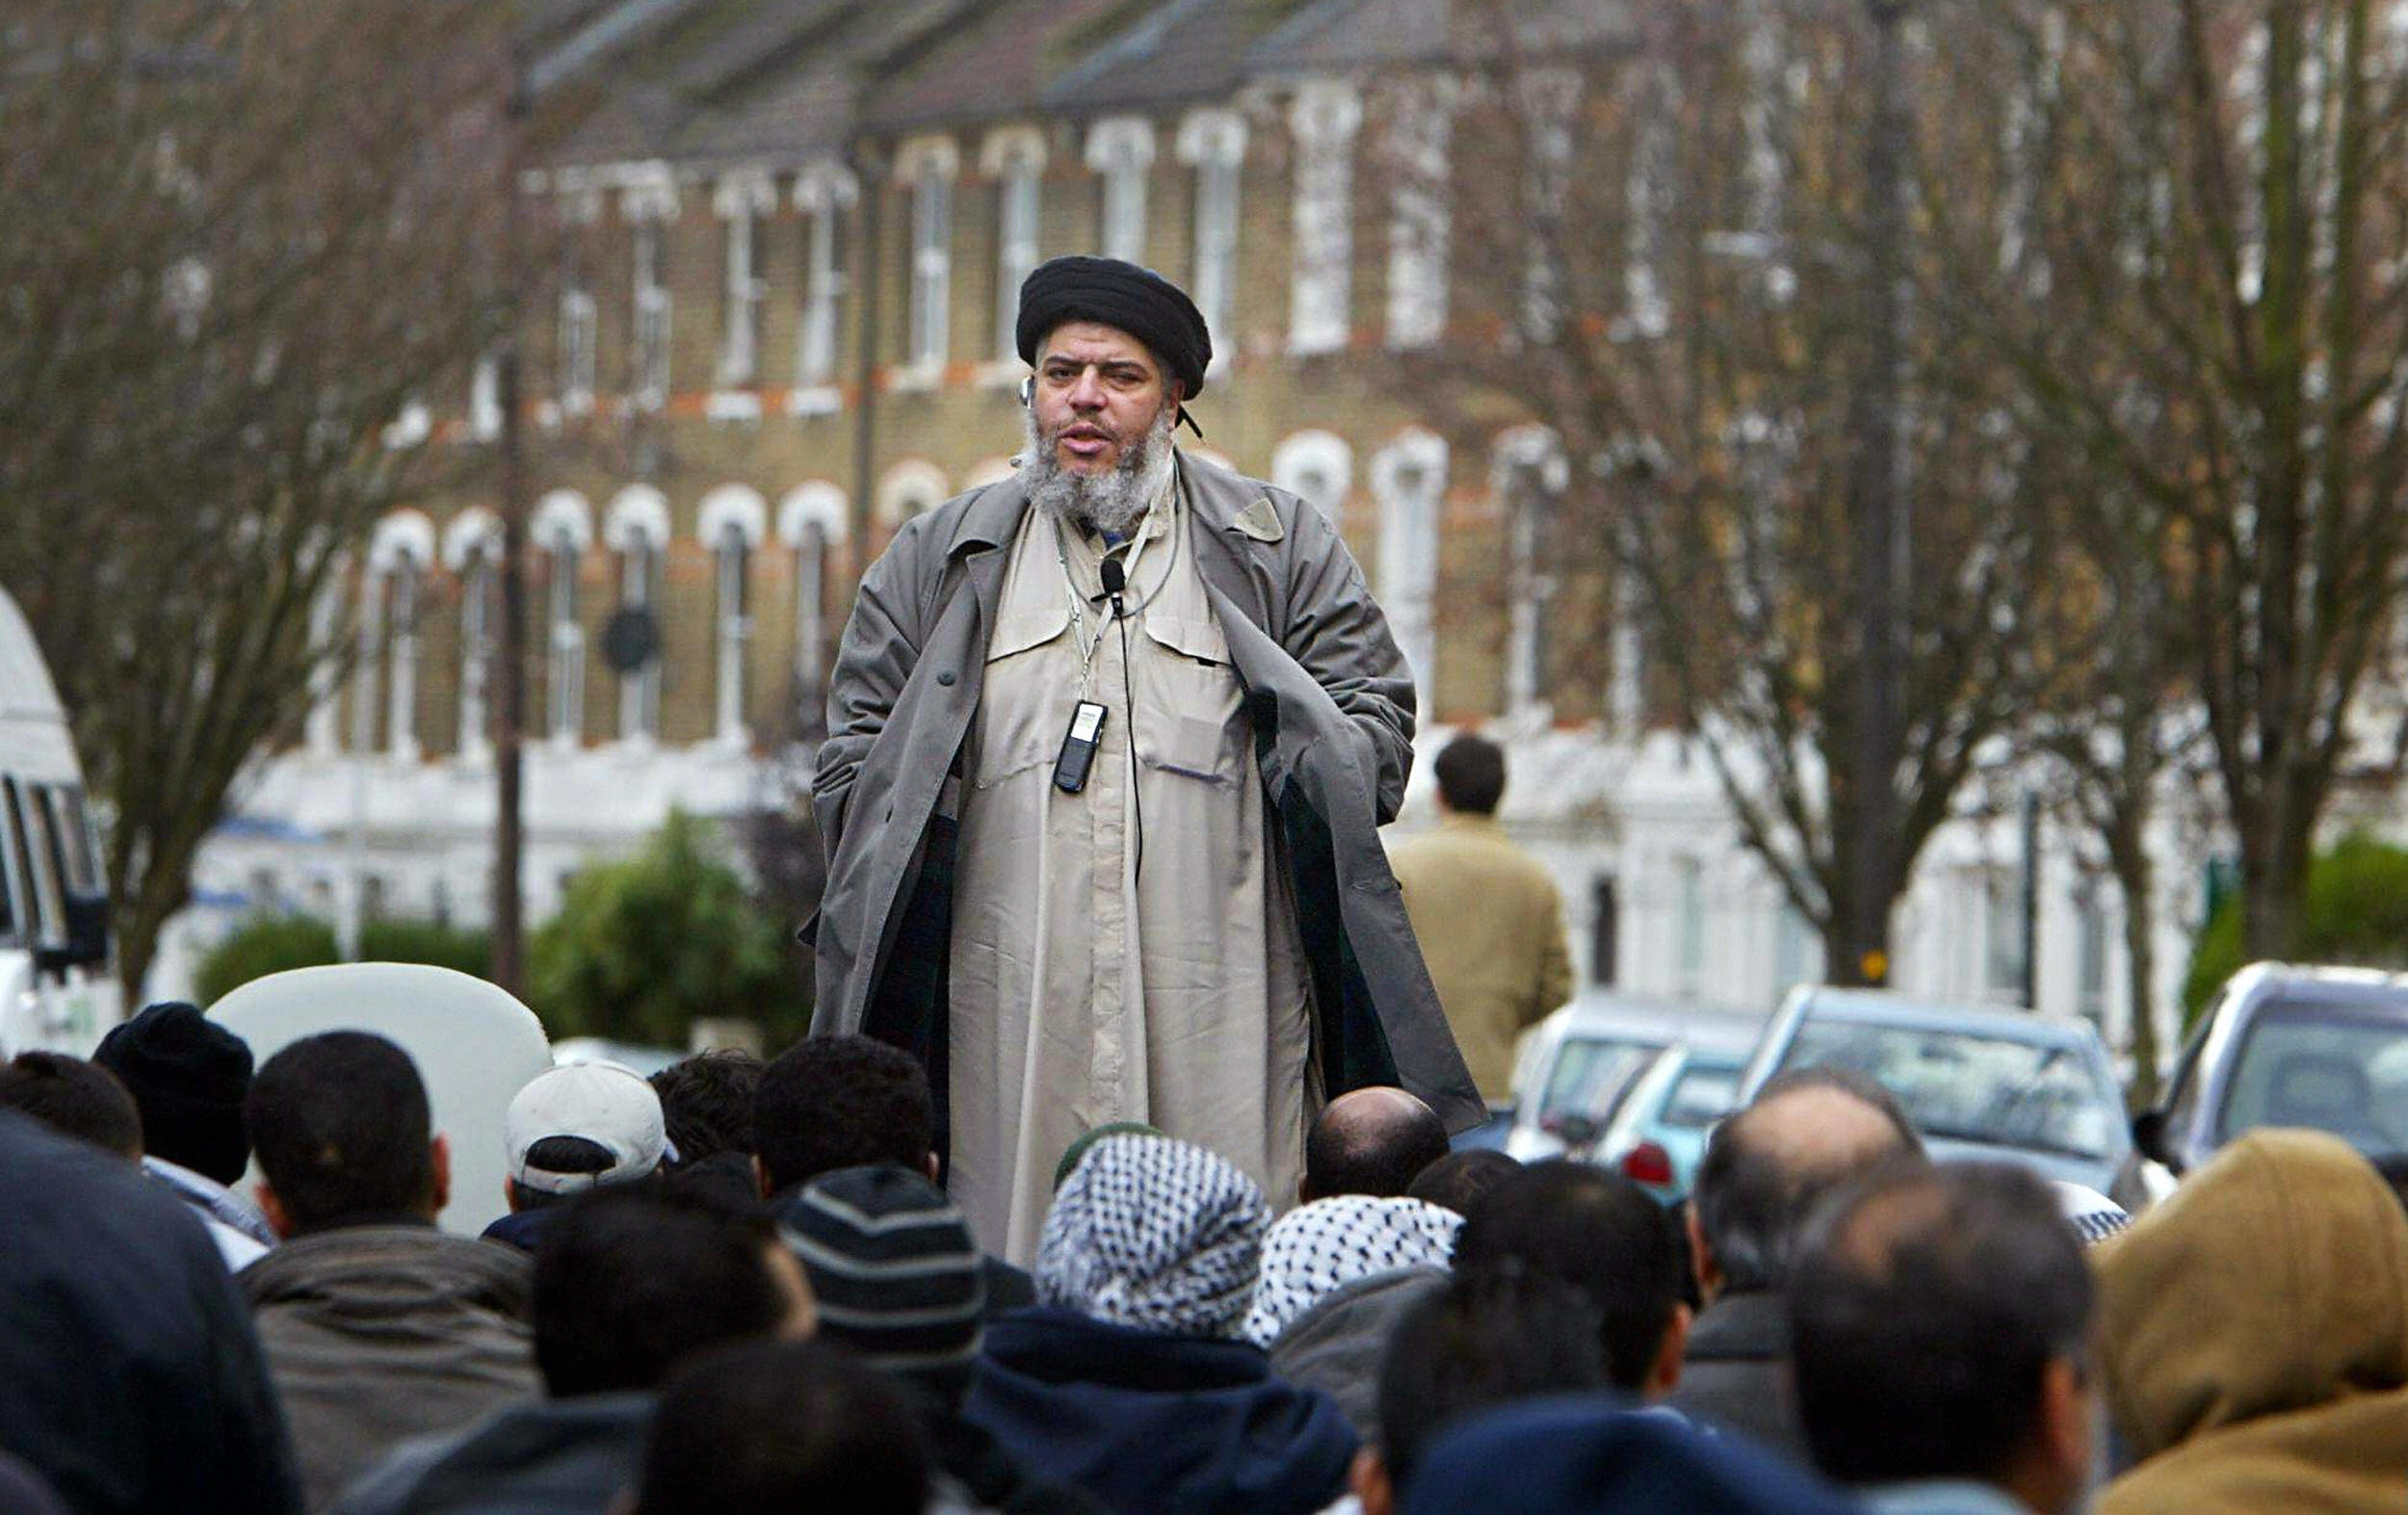 "LONDON, United Kingdom:  (FILES) Imam Abu Hamza al-Masri addresses followers during Friday prayer in near Finsbury Park mosque in north London, in this 26 March 2004 file photo. Hamza al-Masri was found guilty Tuesday 07 February 2006 of incitement of racial hatred and soliciting murder charges after a criminal trial in London. Hamza, 47, was convicted of six out of nine soliciting-to-murder charges and two out of four charges of ""using threatening, abusive or insulting words or behaviour with the intention of stirring up racial hatred"".AFP PHOTO/ODD ANDERSEN/FILES  (Photo credit should read ODD ANDERSEN/AFP/Getty Images)"